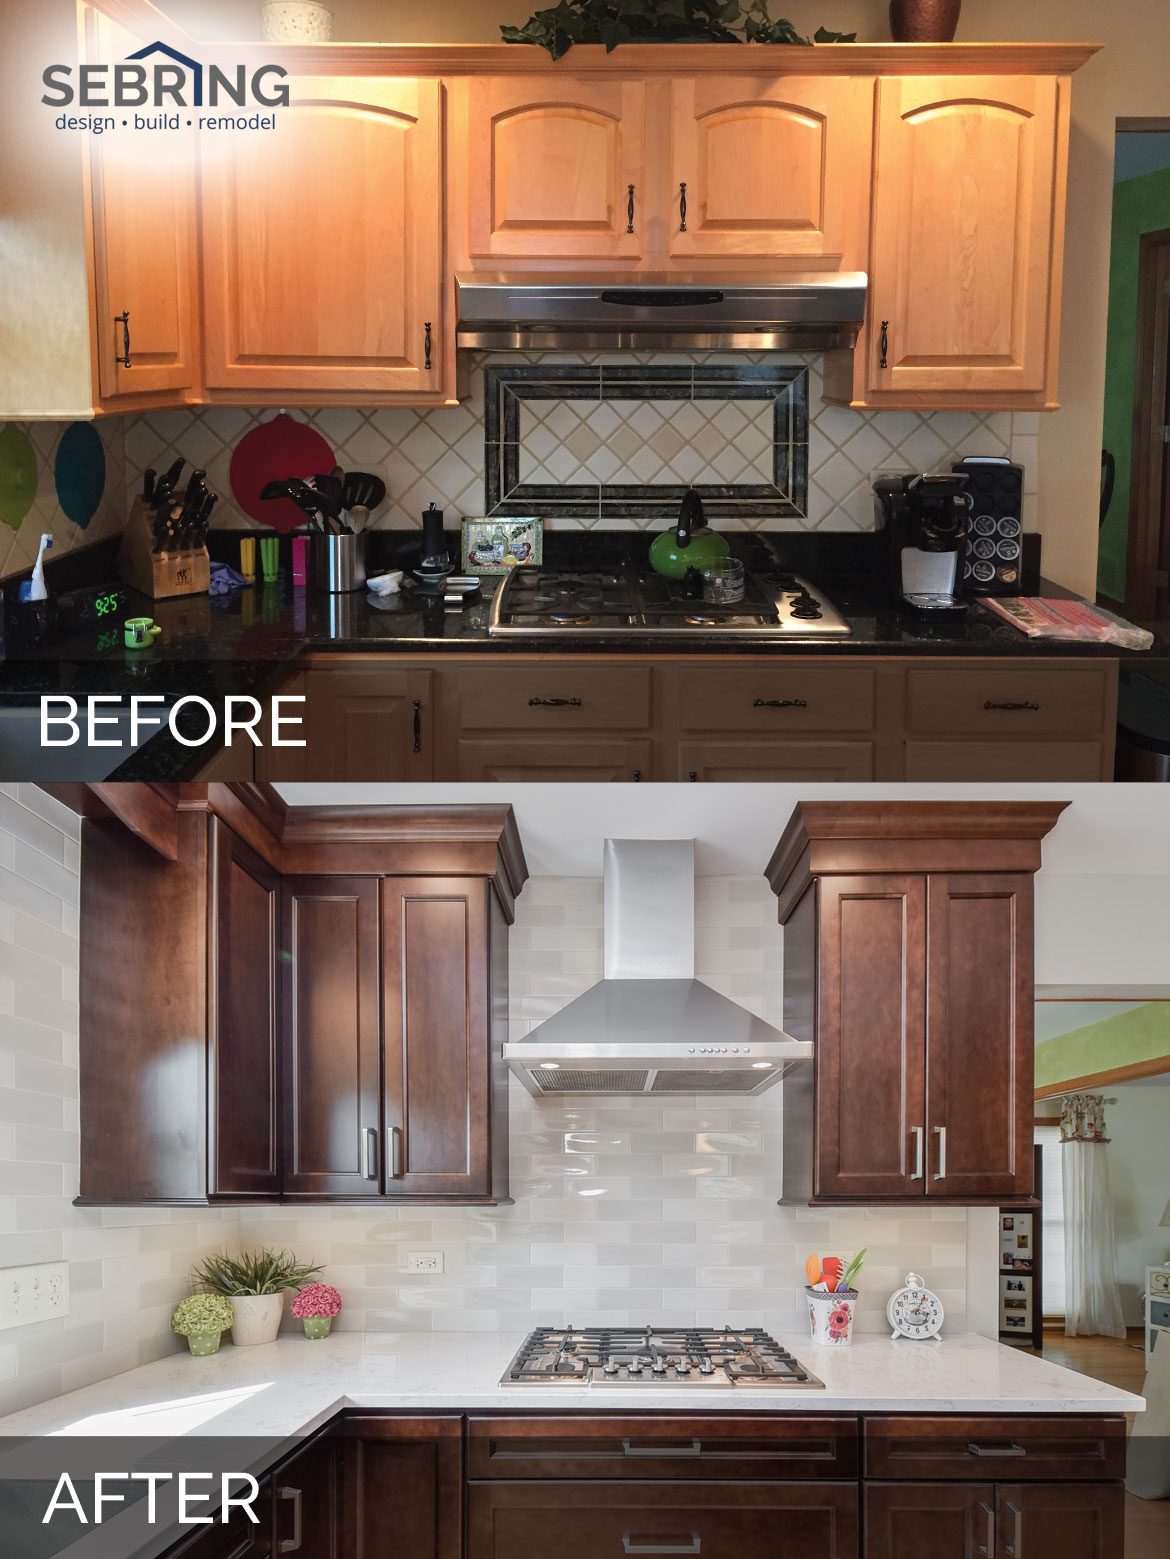 Sue & Russell's Kitchen Before & After Pictures